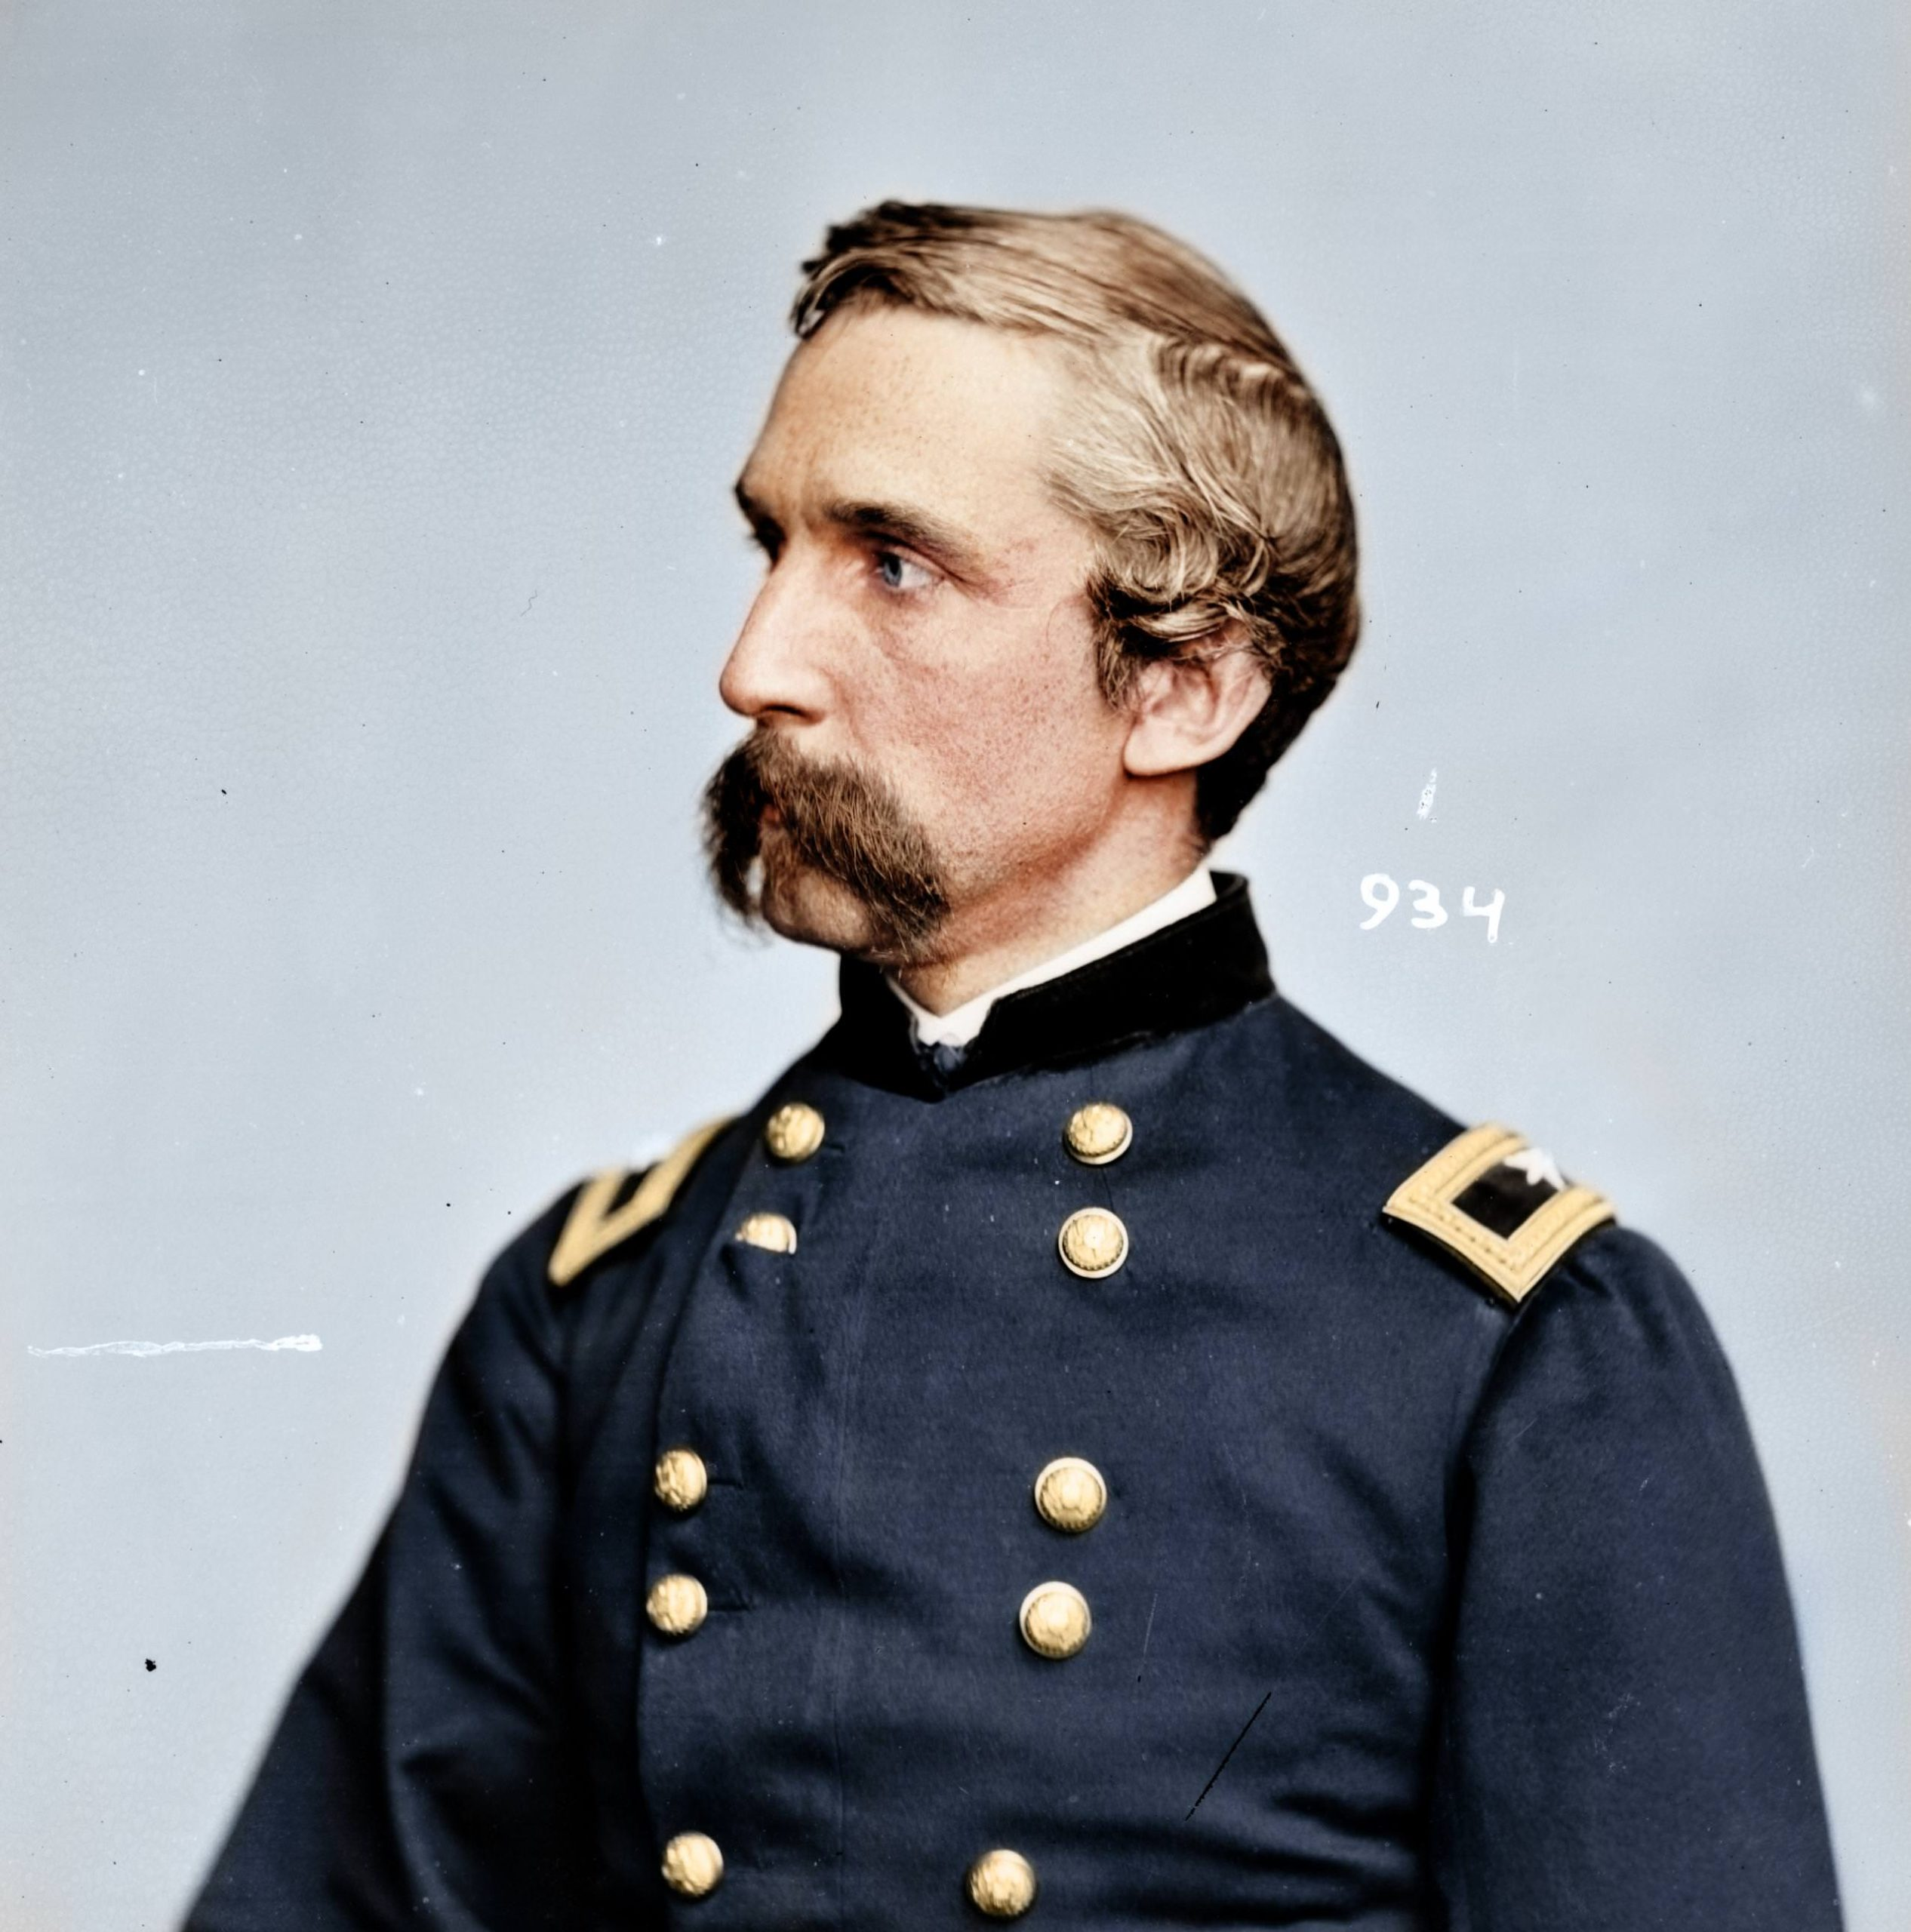 Joshua Lawrence Chamberlain, Brevet Major General during the American Civil War, and was a college professor both before, and after the war - received a Medal of Honor for gallantry at the Battle of Gettysburg, 1865